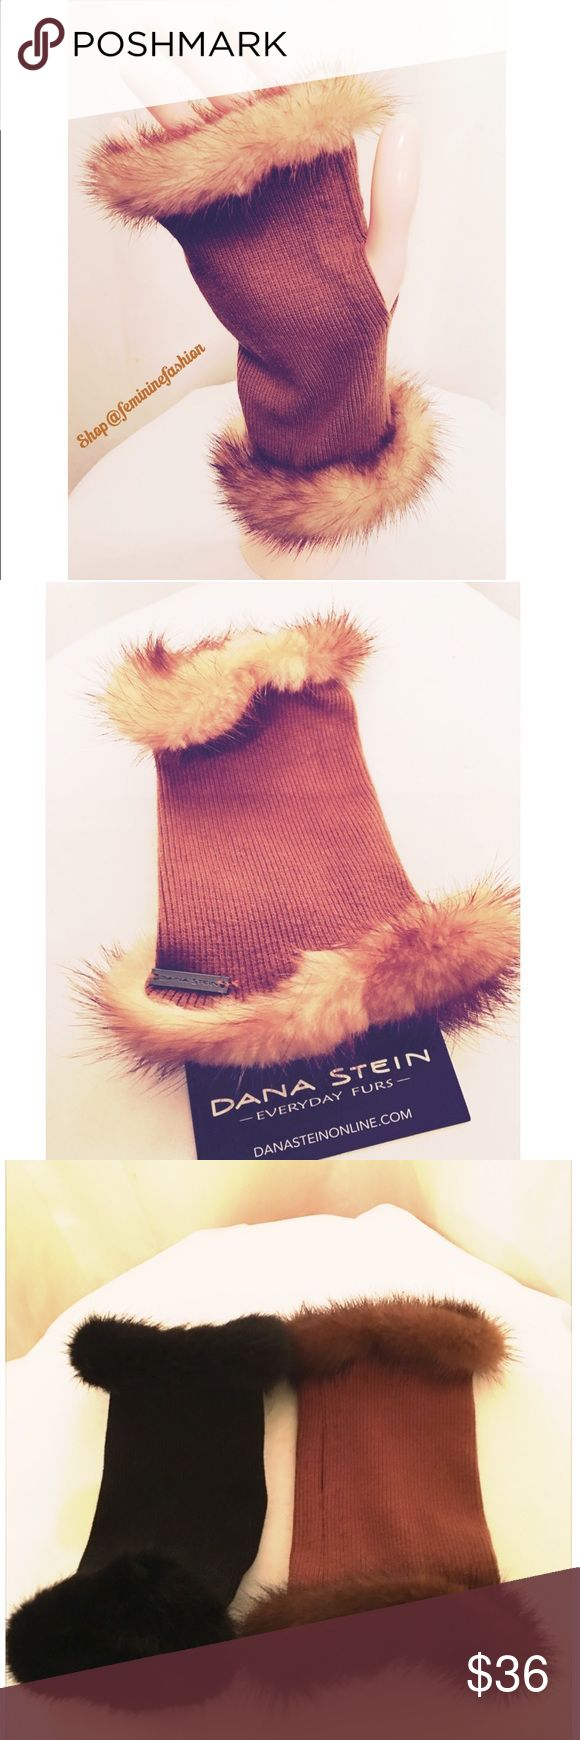 Camel Mink Trimmed Fingerless Gloves Glamorous Mink Trimmed Fingerless Gloves. Color is Whiskey...a shade of camel. Glove fabric is finely ribbed and has some stretch. Also available in black or brown in this closet. Truly elegant🌹 Dana Stein Accessories Gloves & Mittens